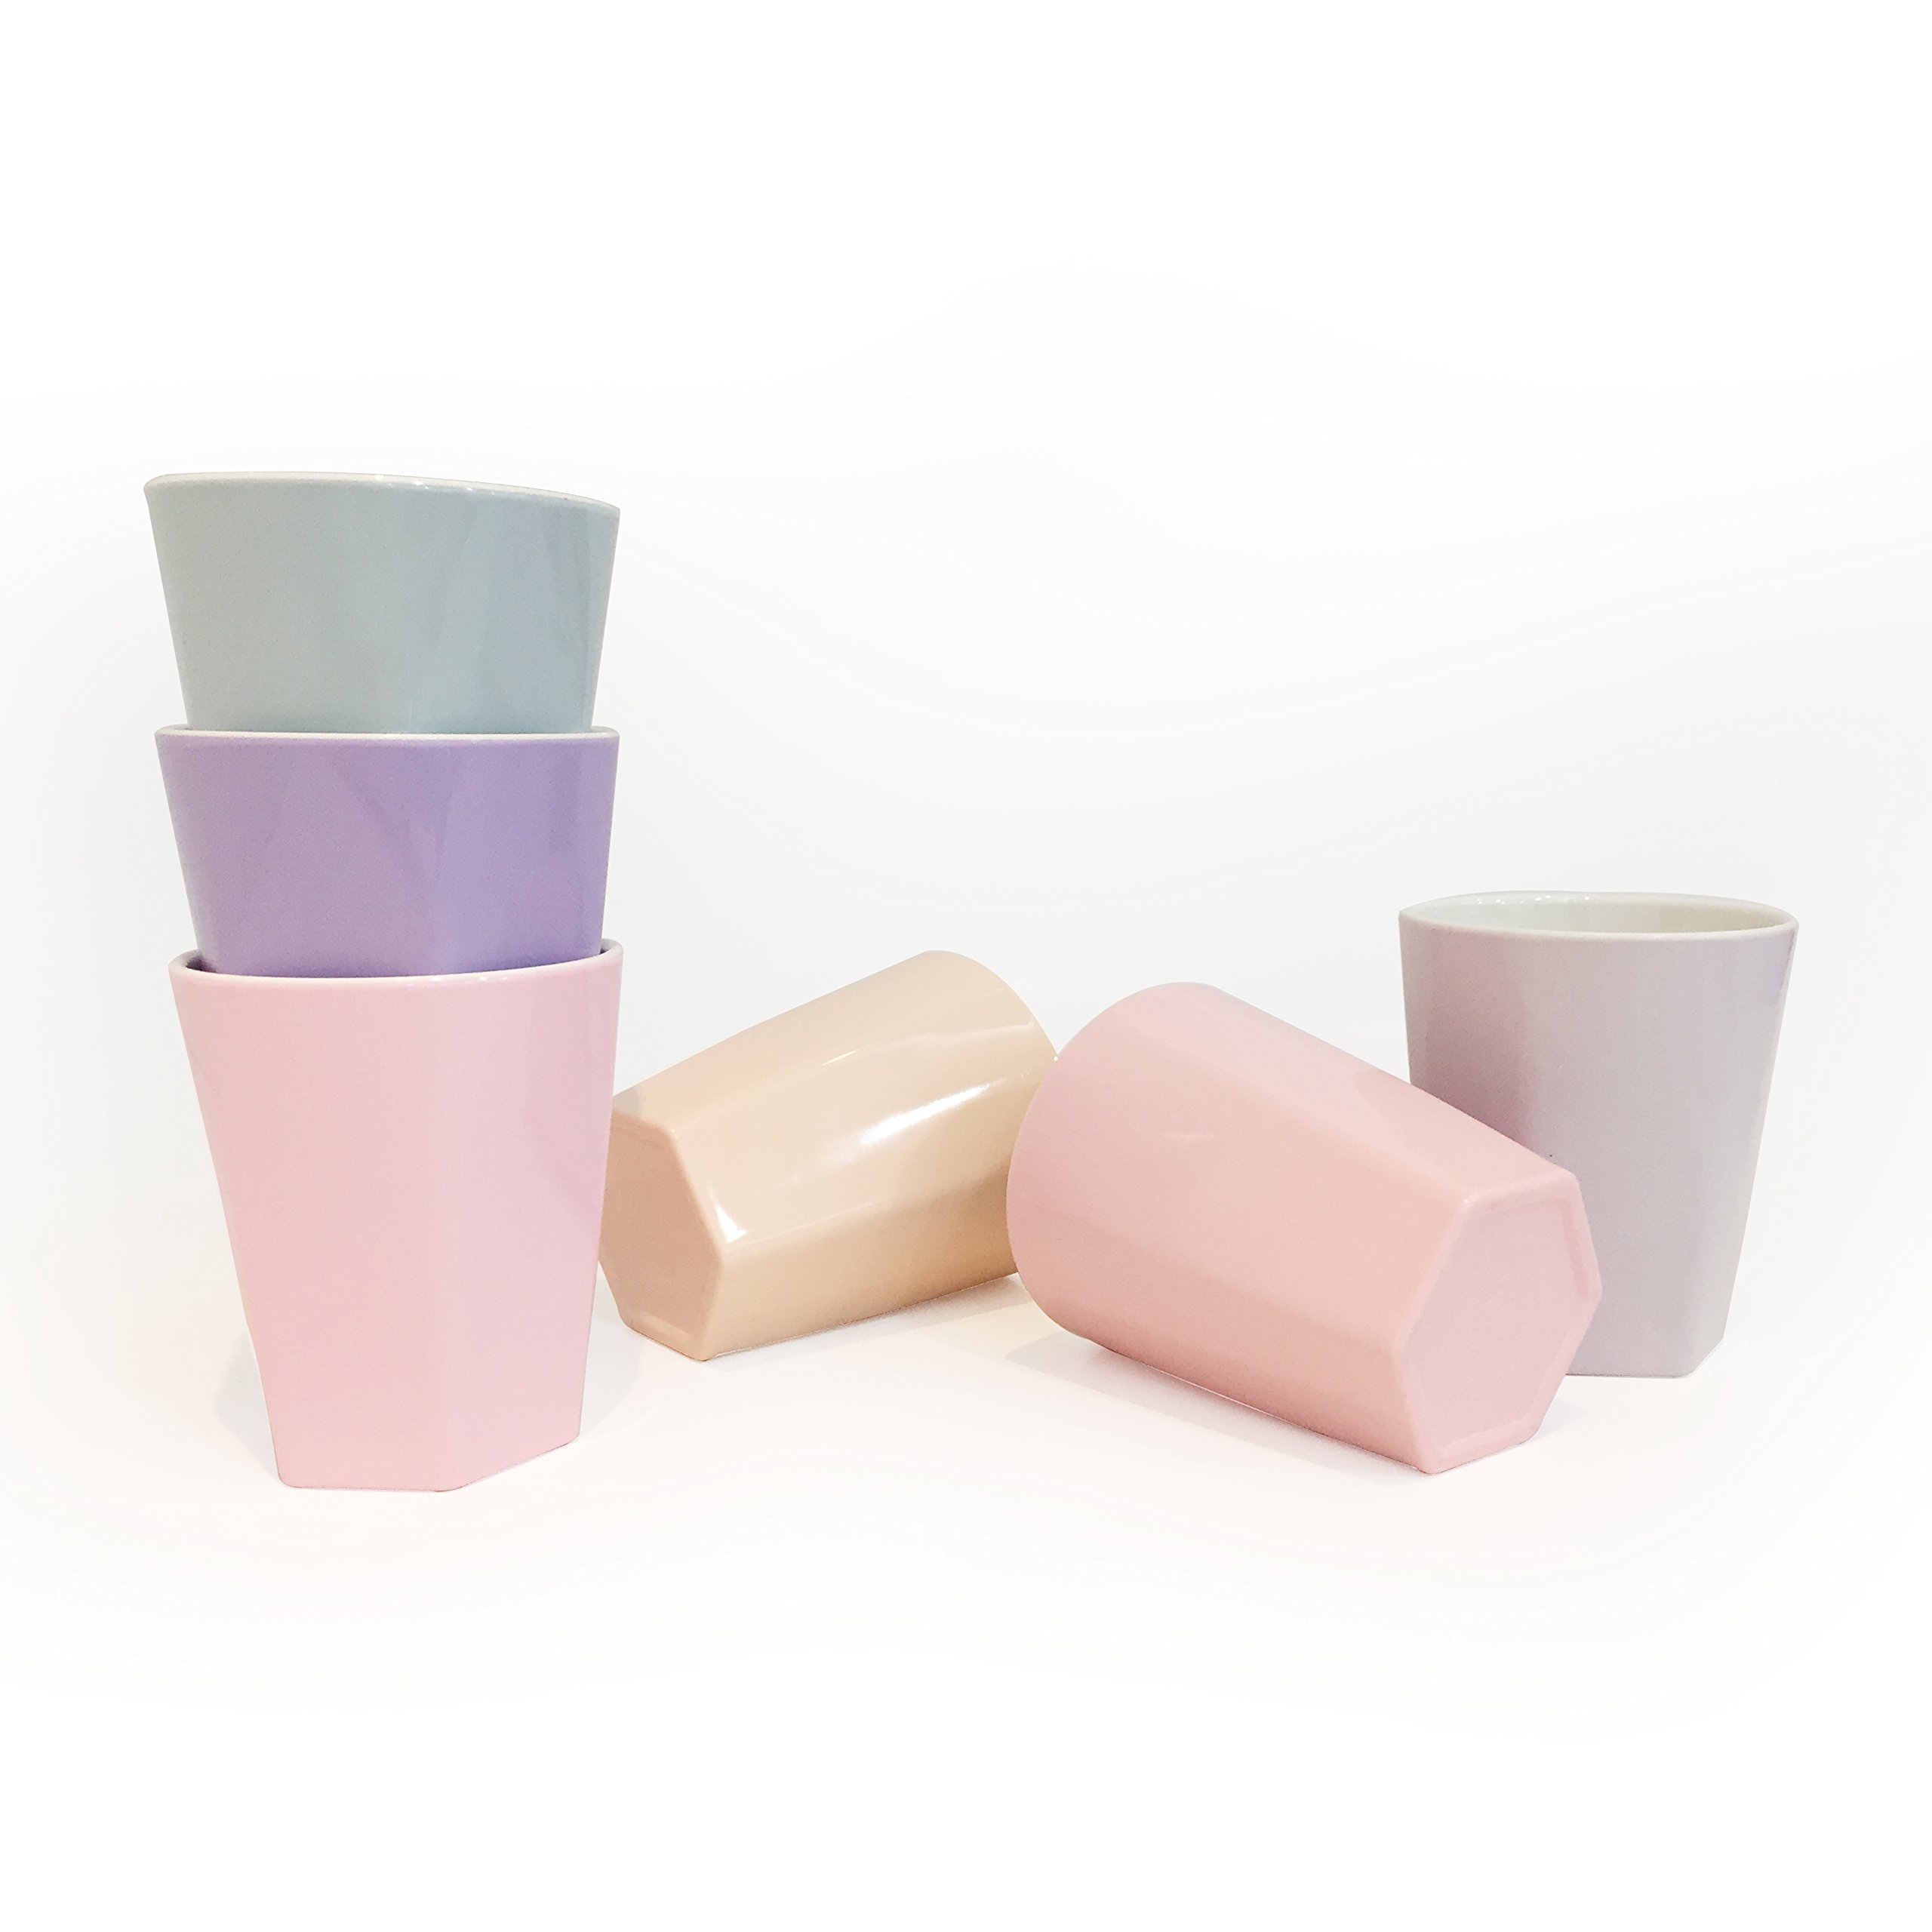 TP up! Lovely Reusable Hard Plastic Melamine Party Cups Mugs Tumblers for Children, BPA-Free&Easy Clean, Set of 6, 6.8oz